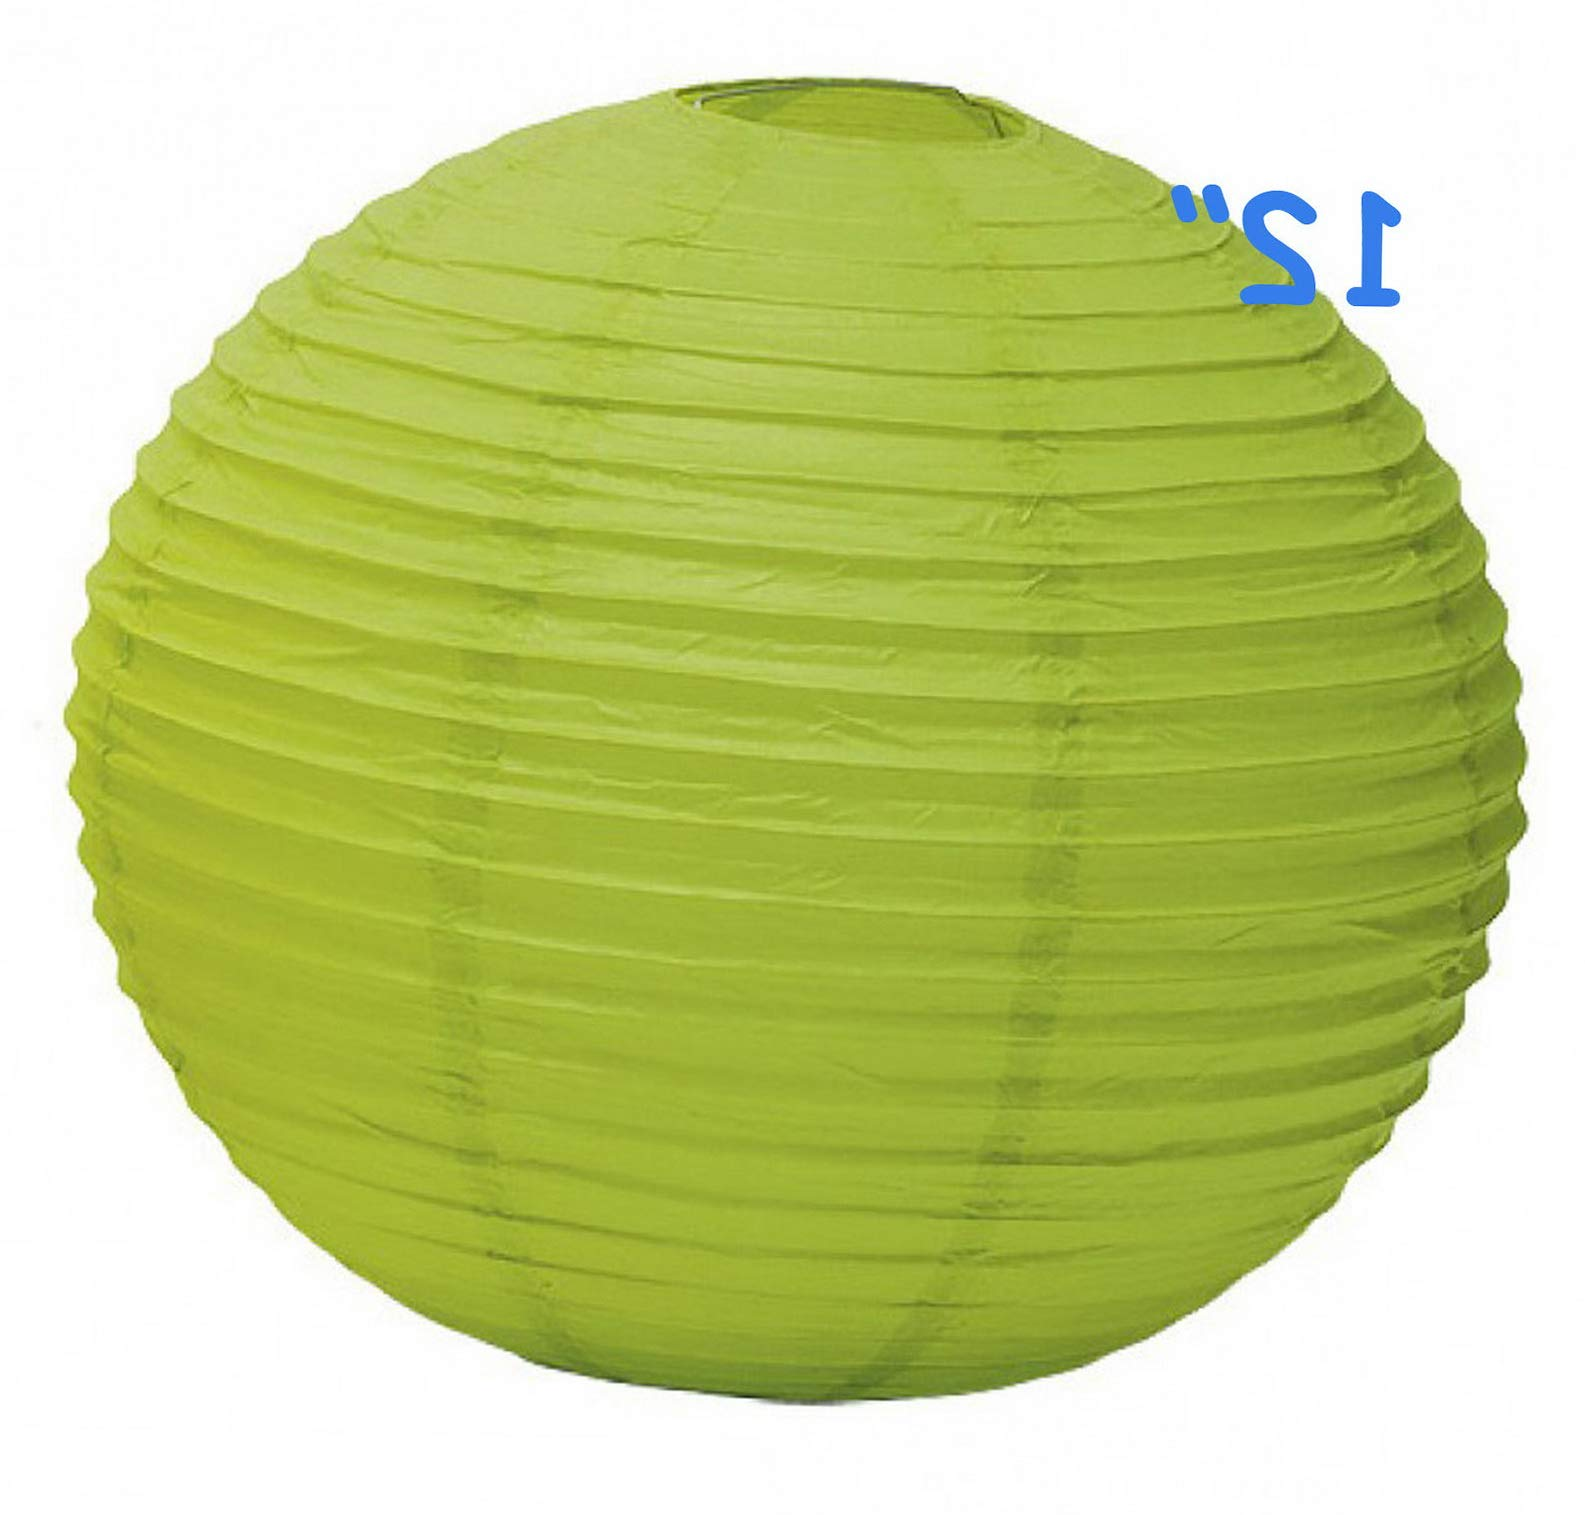 Mikash 12X Round Chinese Paper Lanterns lamp 12 Wedding Party Floral Event Decoration   Model WDDNGDCRTN - 25488   with Light